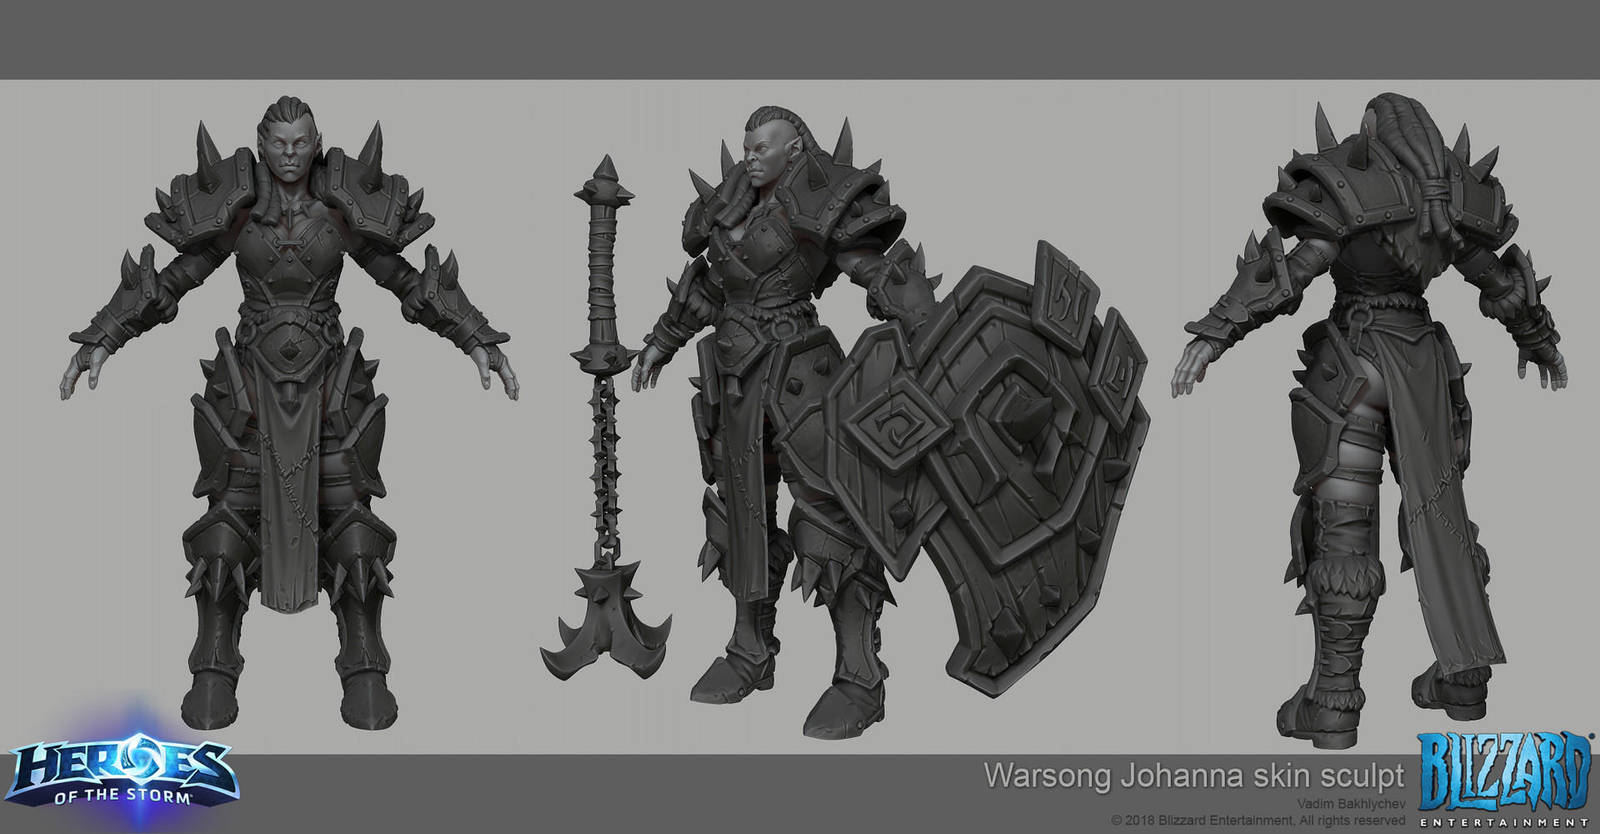 Heroes of the Storm - Johanna skin by slipgatecentral